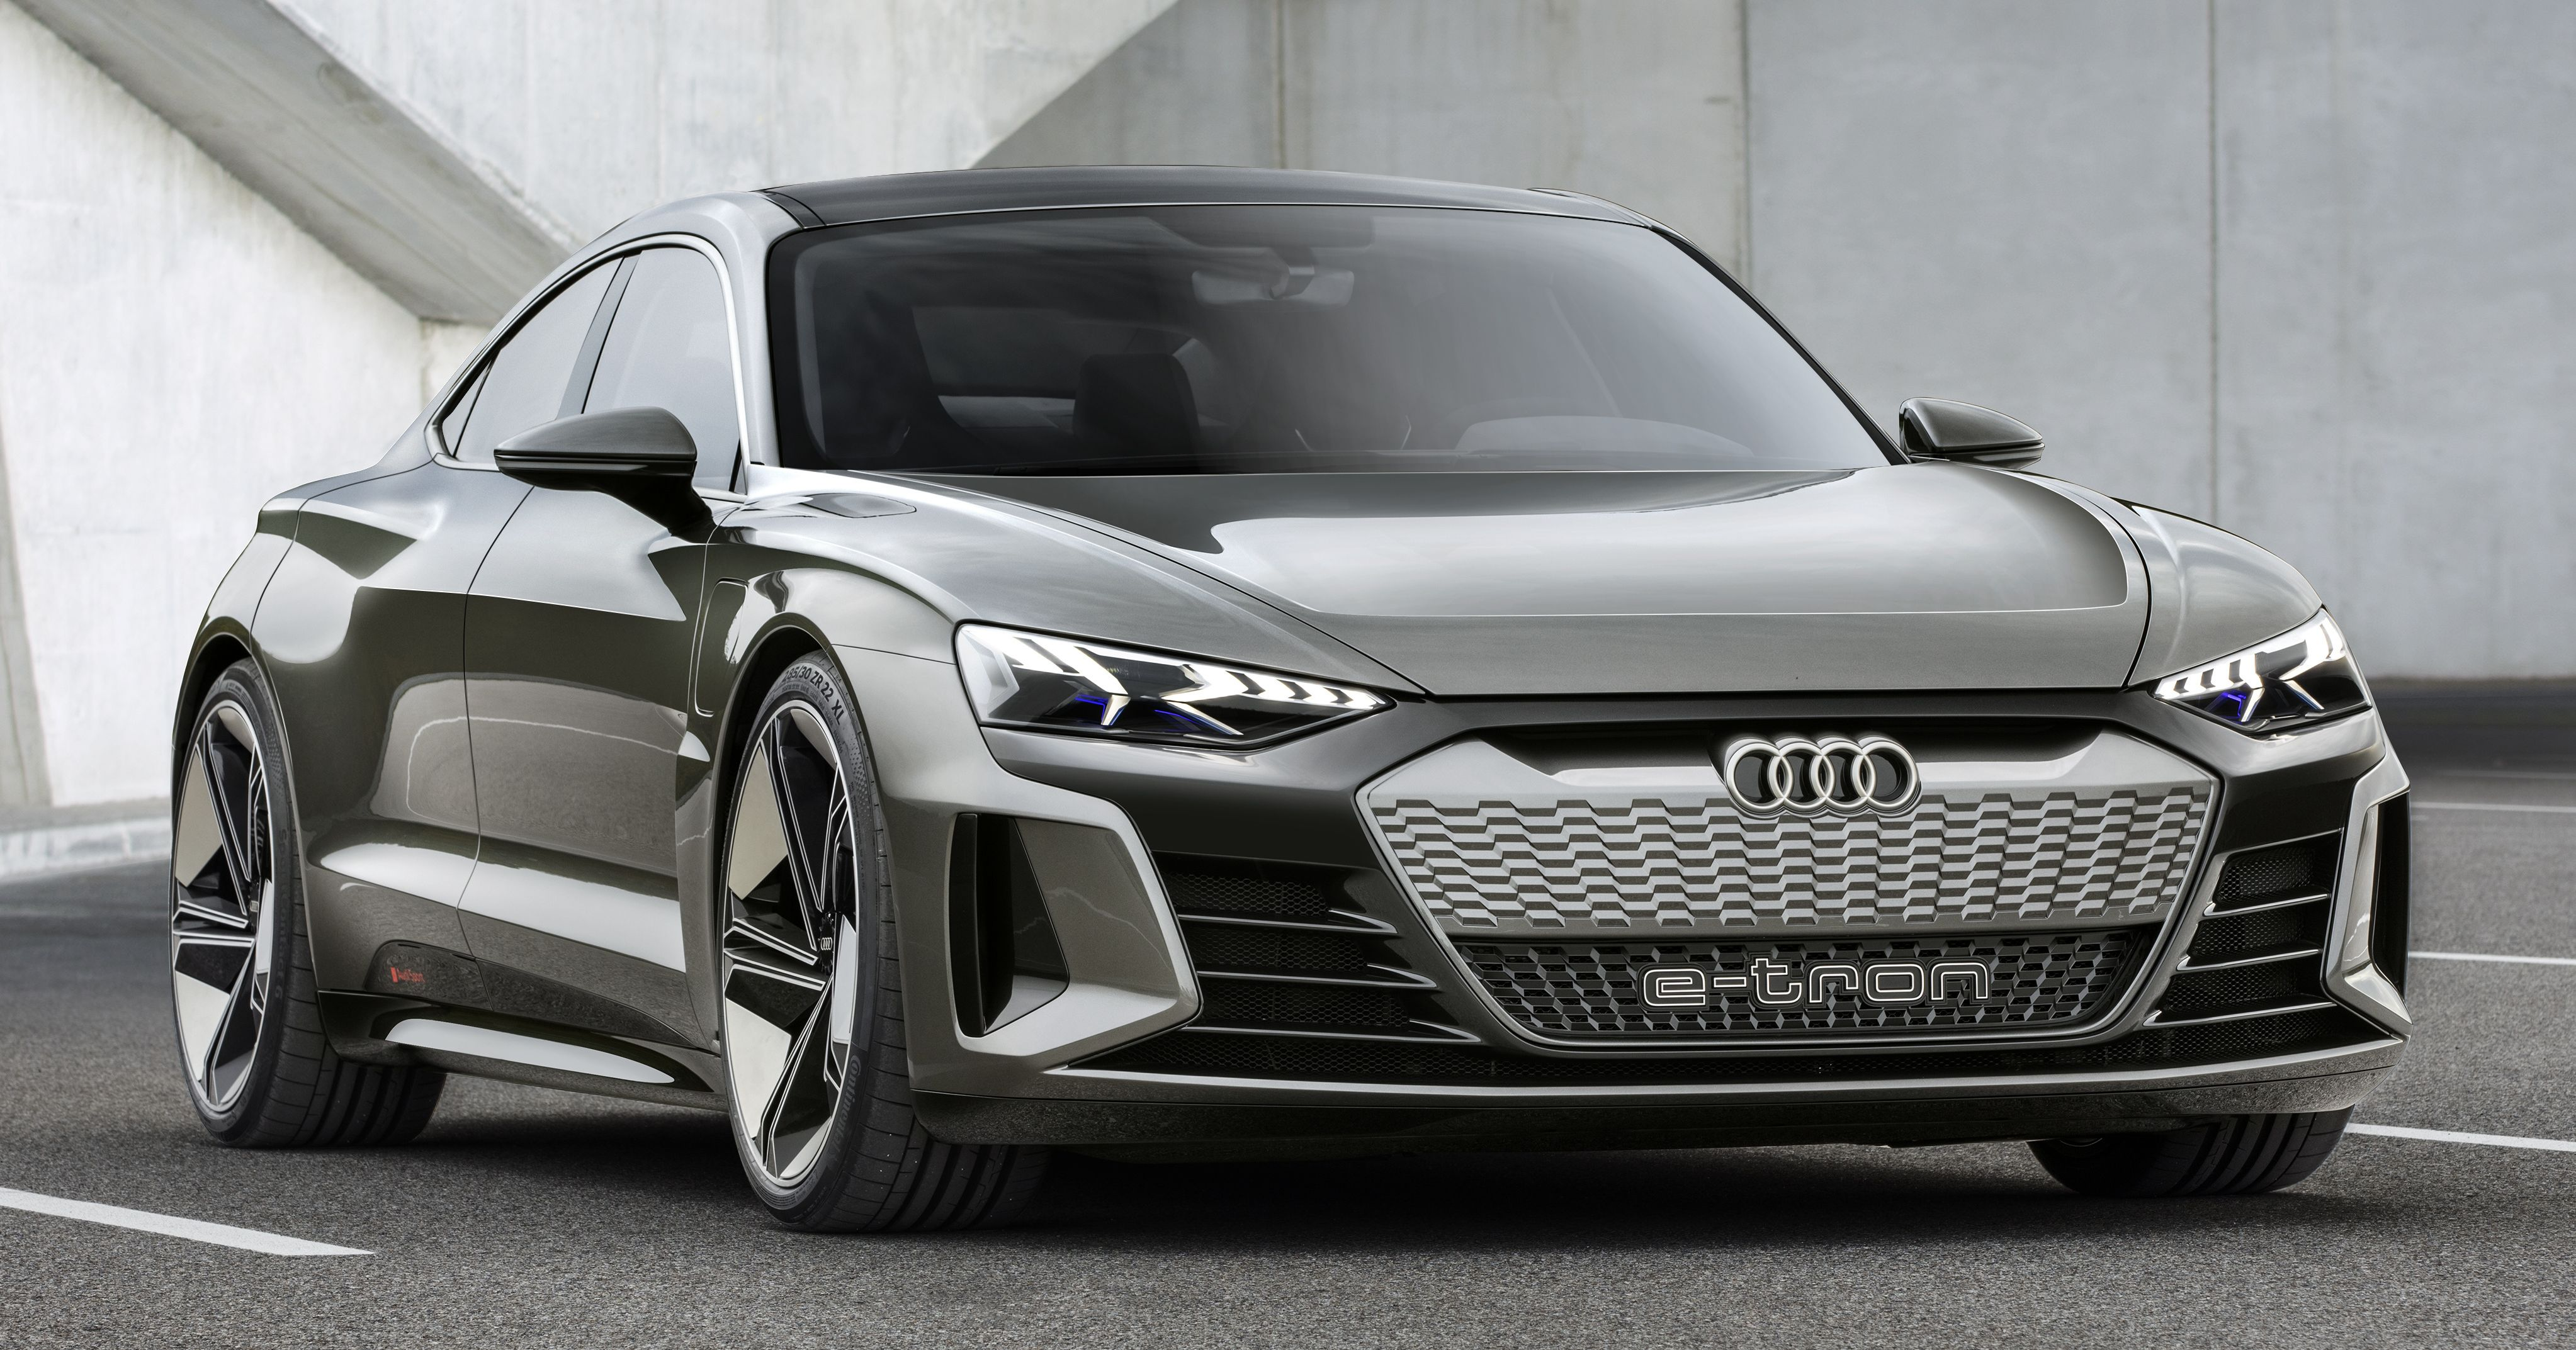 Audi Sport To Enter Ev Field With Rs Branded E Tron Gt Paultan Org